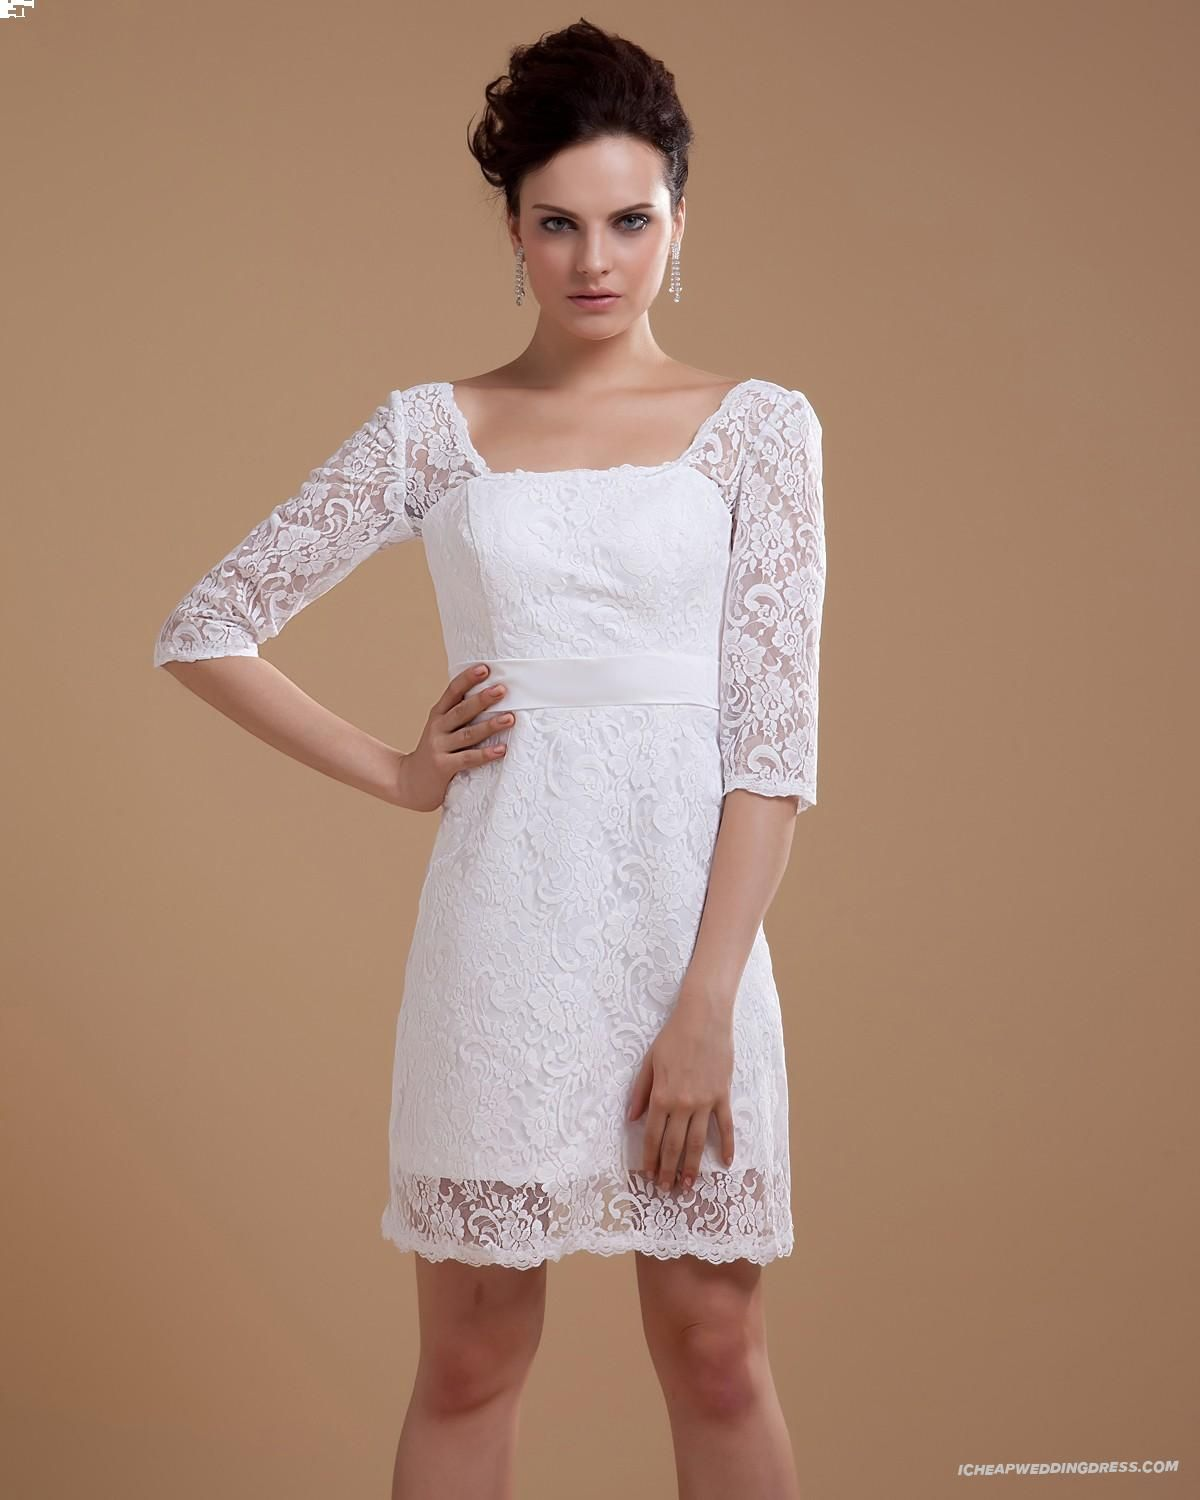 Mini white wedding dress  Three Quarter Sleeve Lace Square Neck Mini Wedding Dresses I I